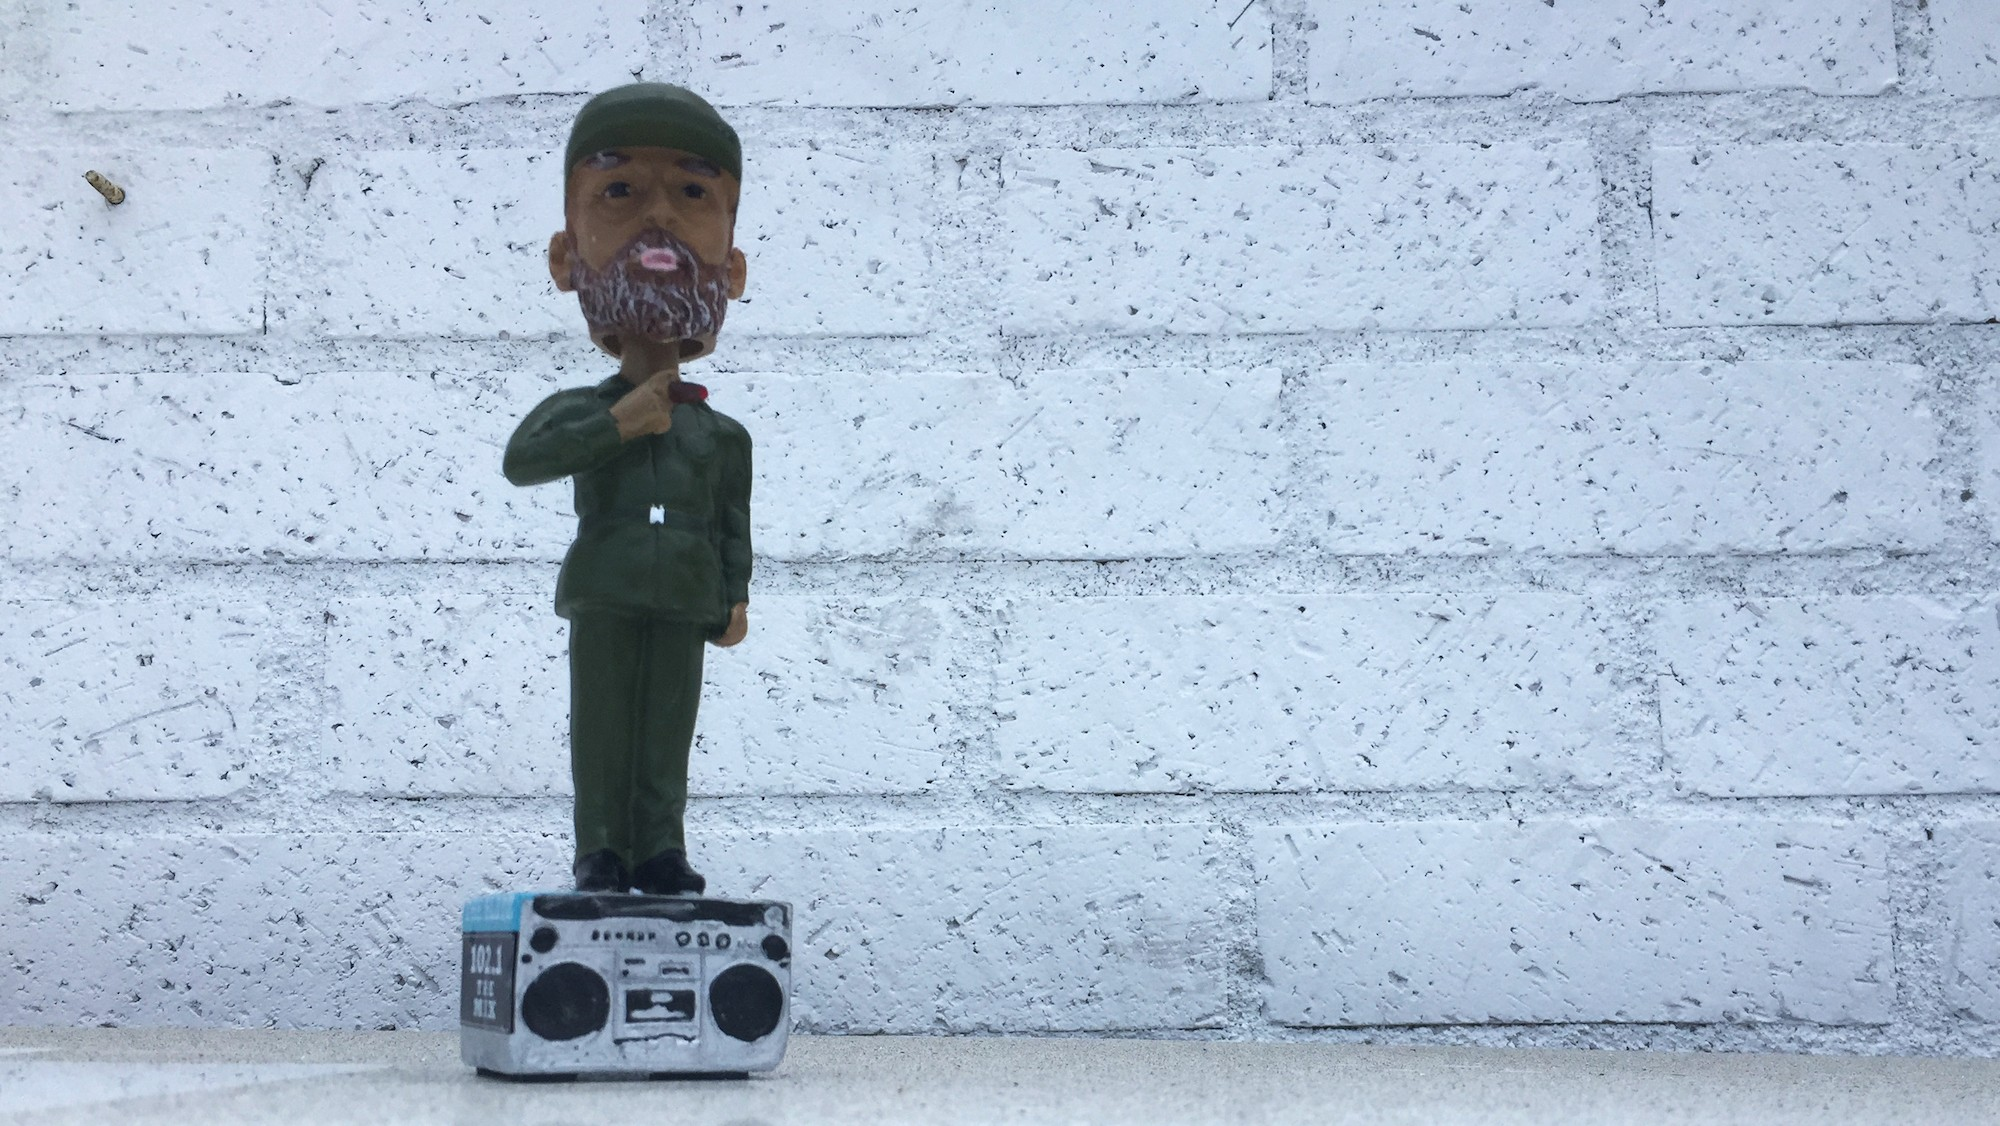 Want a Fidel Castro Bobblehead? Better Get to Guantanamo Bay Fast